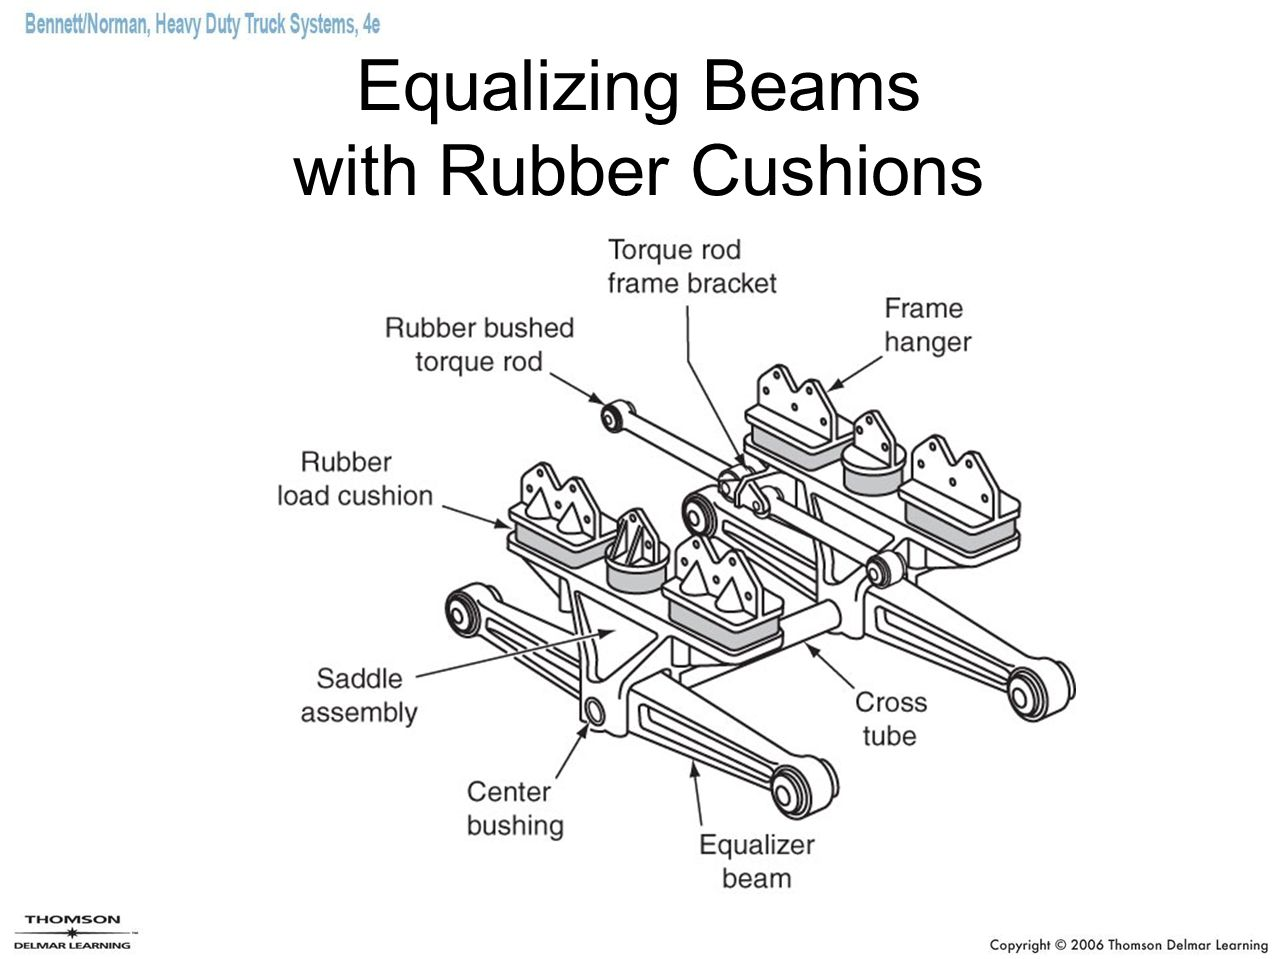 Equalizing Beams with Rubber Cushions